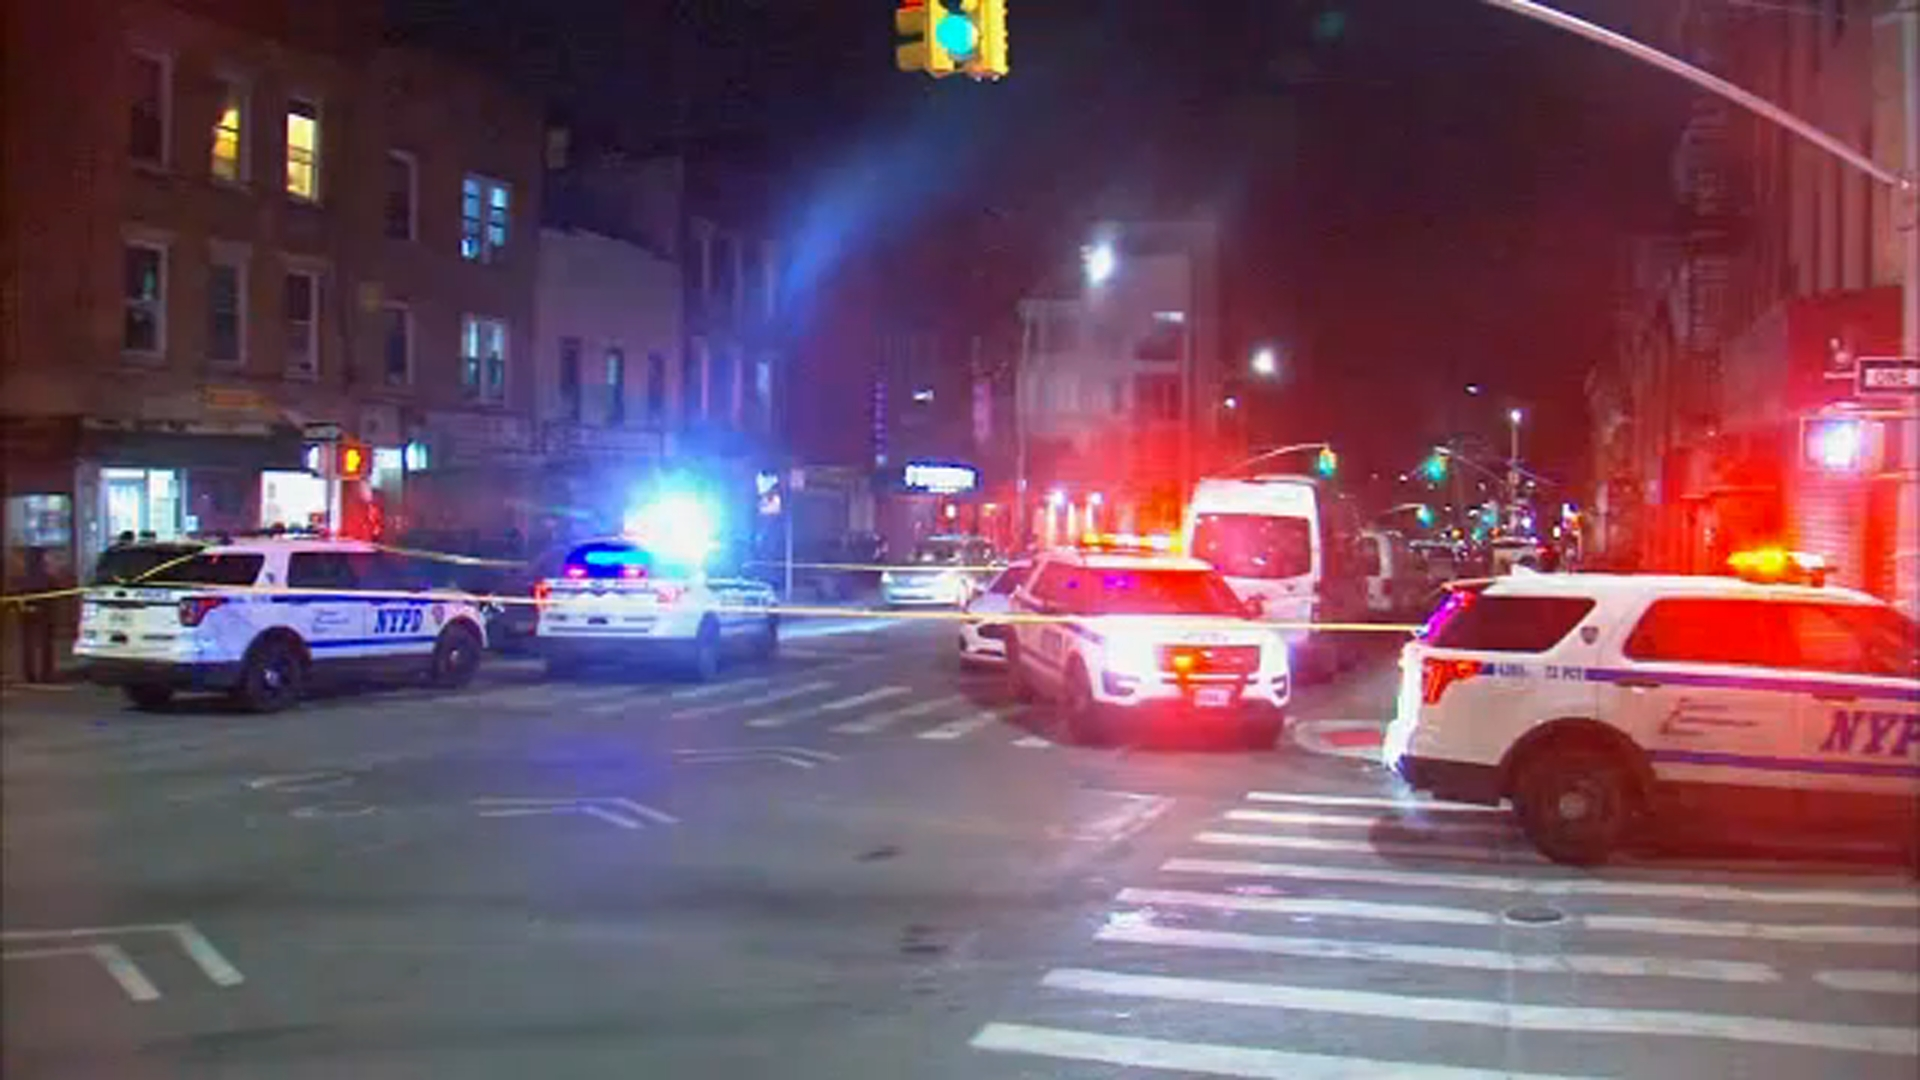 1 dead, 6 injured after stabbing at illegal gambling den in Brooklyn